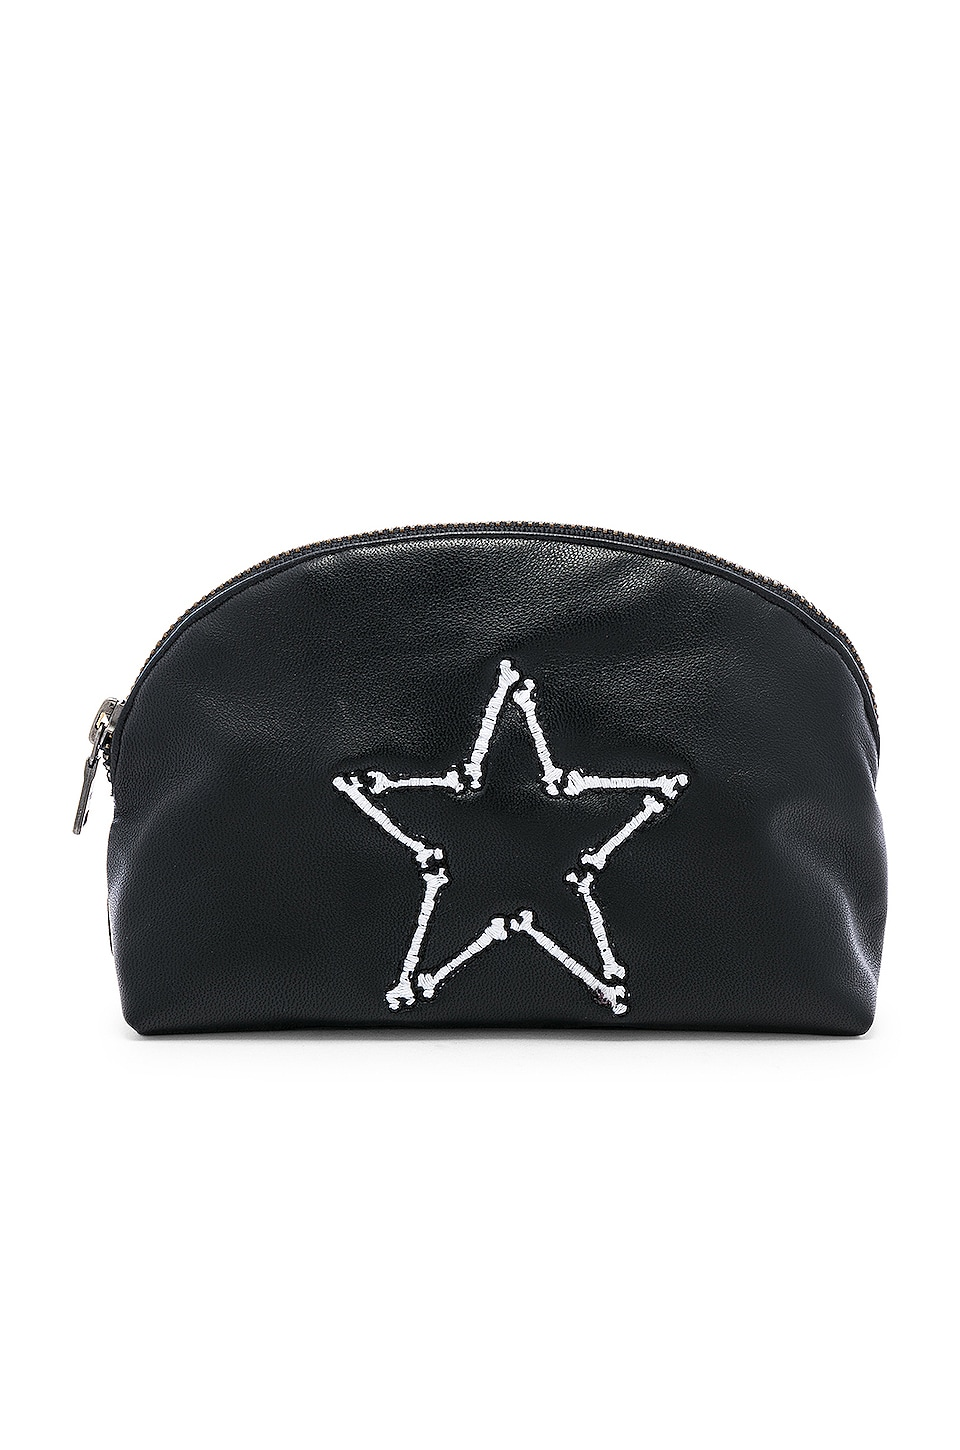 Embry Make Up Pouch